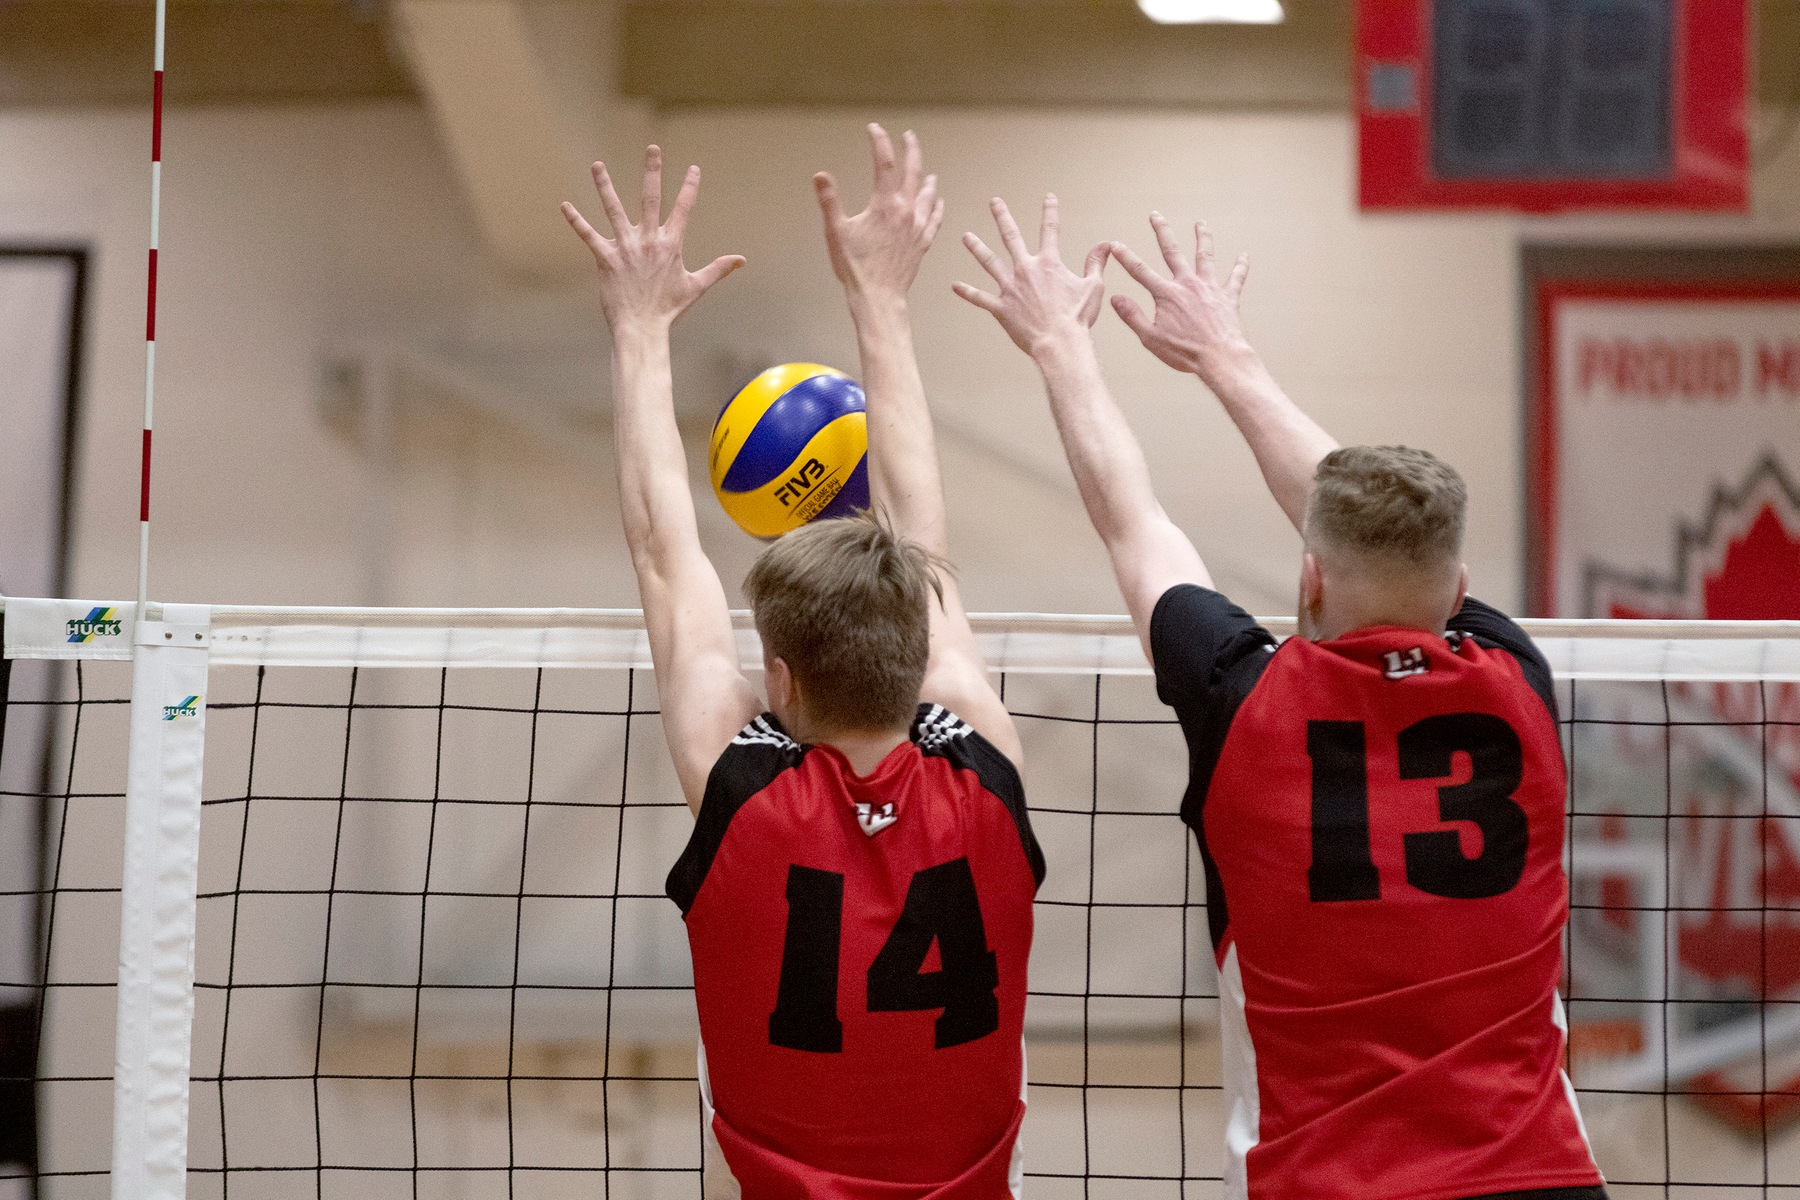 Wesmen Liam Kristjanson (left) and Ethan Duncan team up to get a block on a Calgary attack during a men's volleyball match Friday, Feb. 7, 2020 at the Duckworth Centre. (David Larkins/Wesmen Athletics)